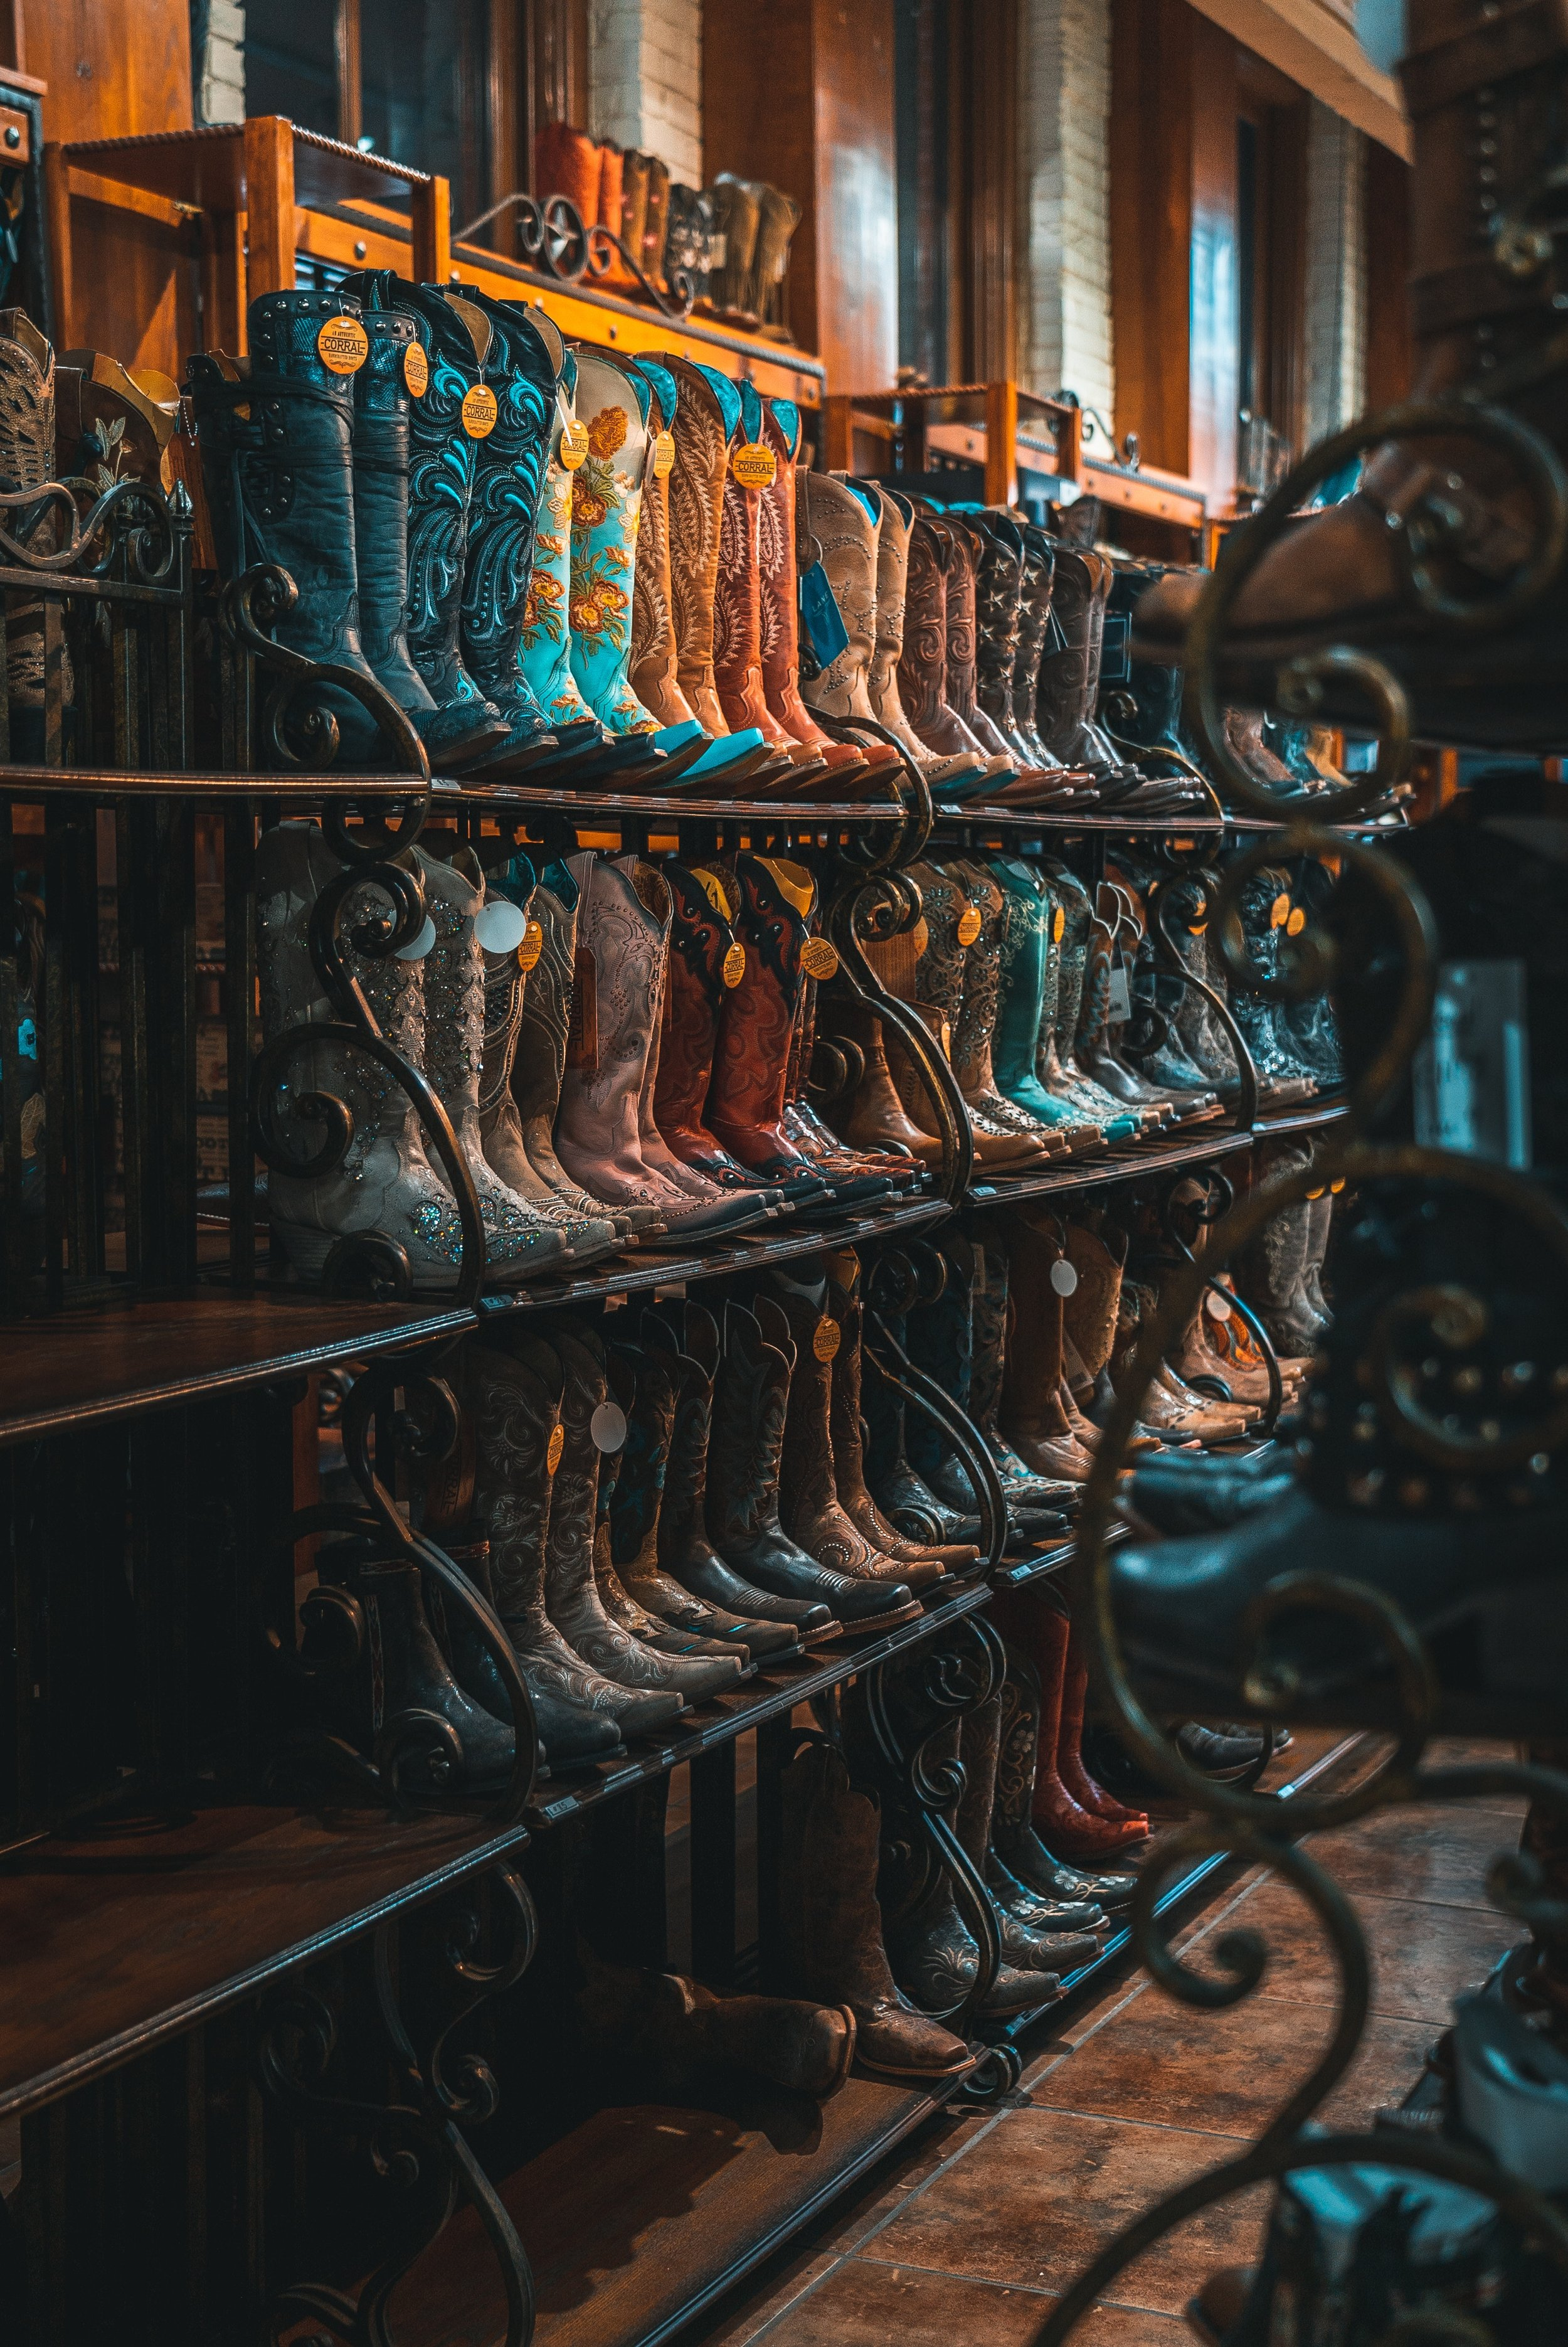 These boots were made for walkin'…